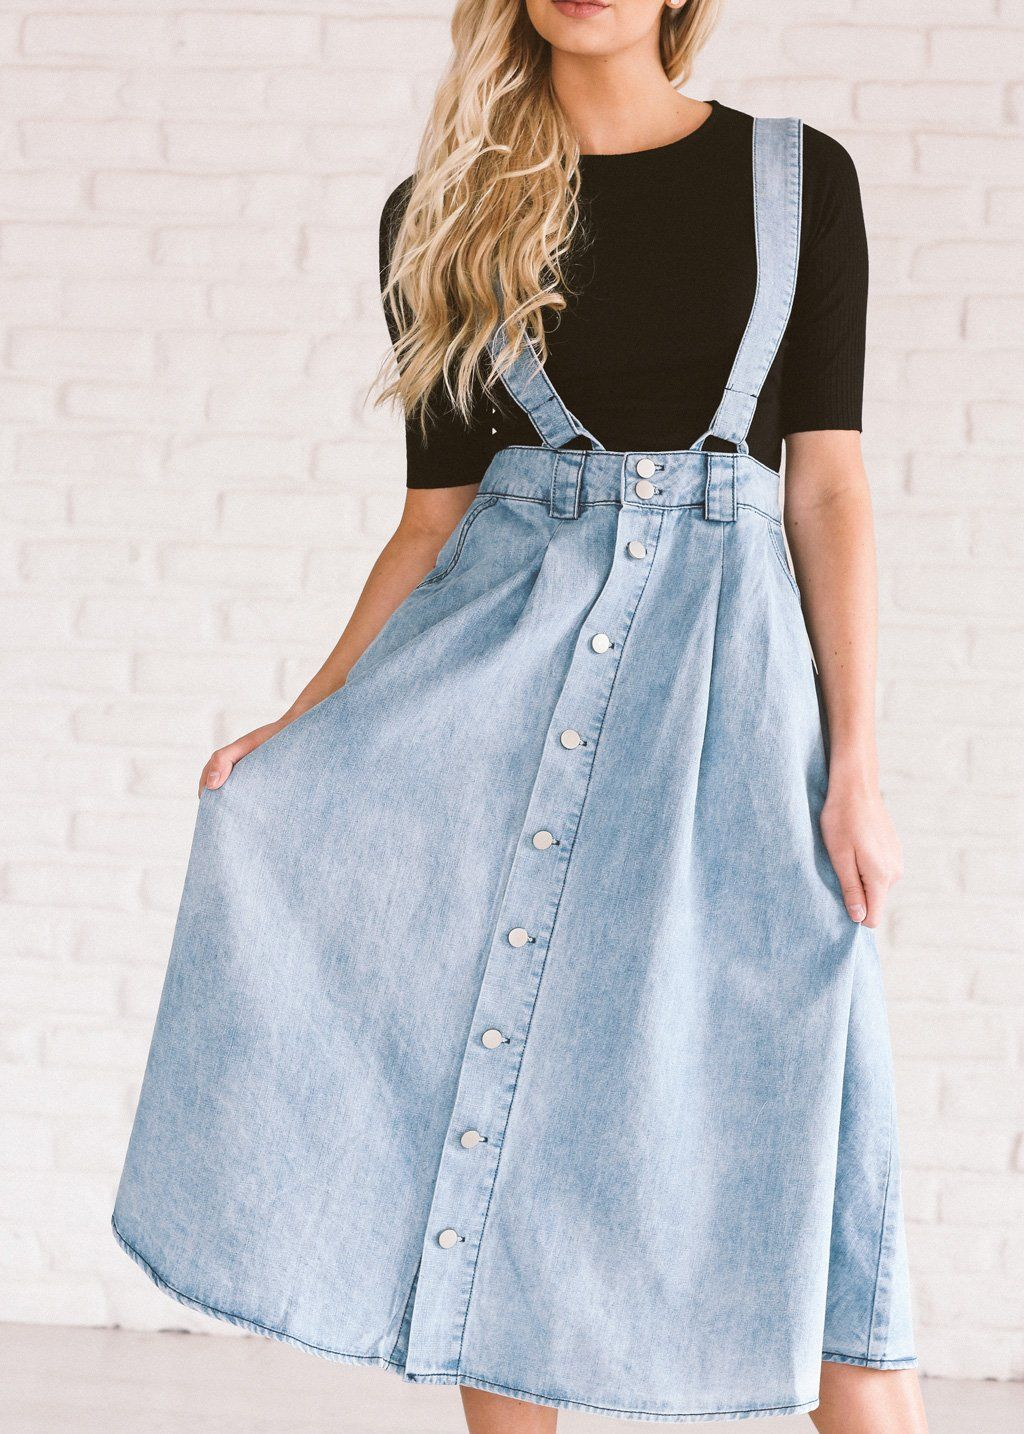 cccaaffe3d2 There is nothing you won t be able to conquer in this denim skirt.